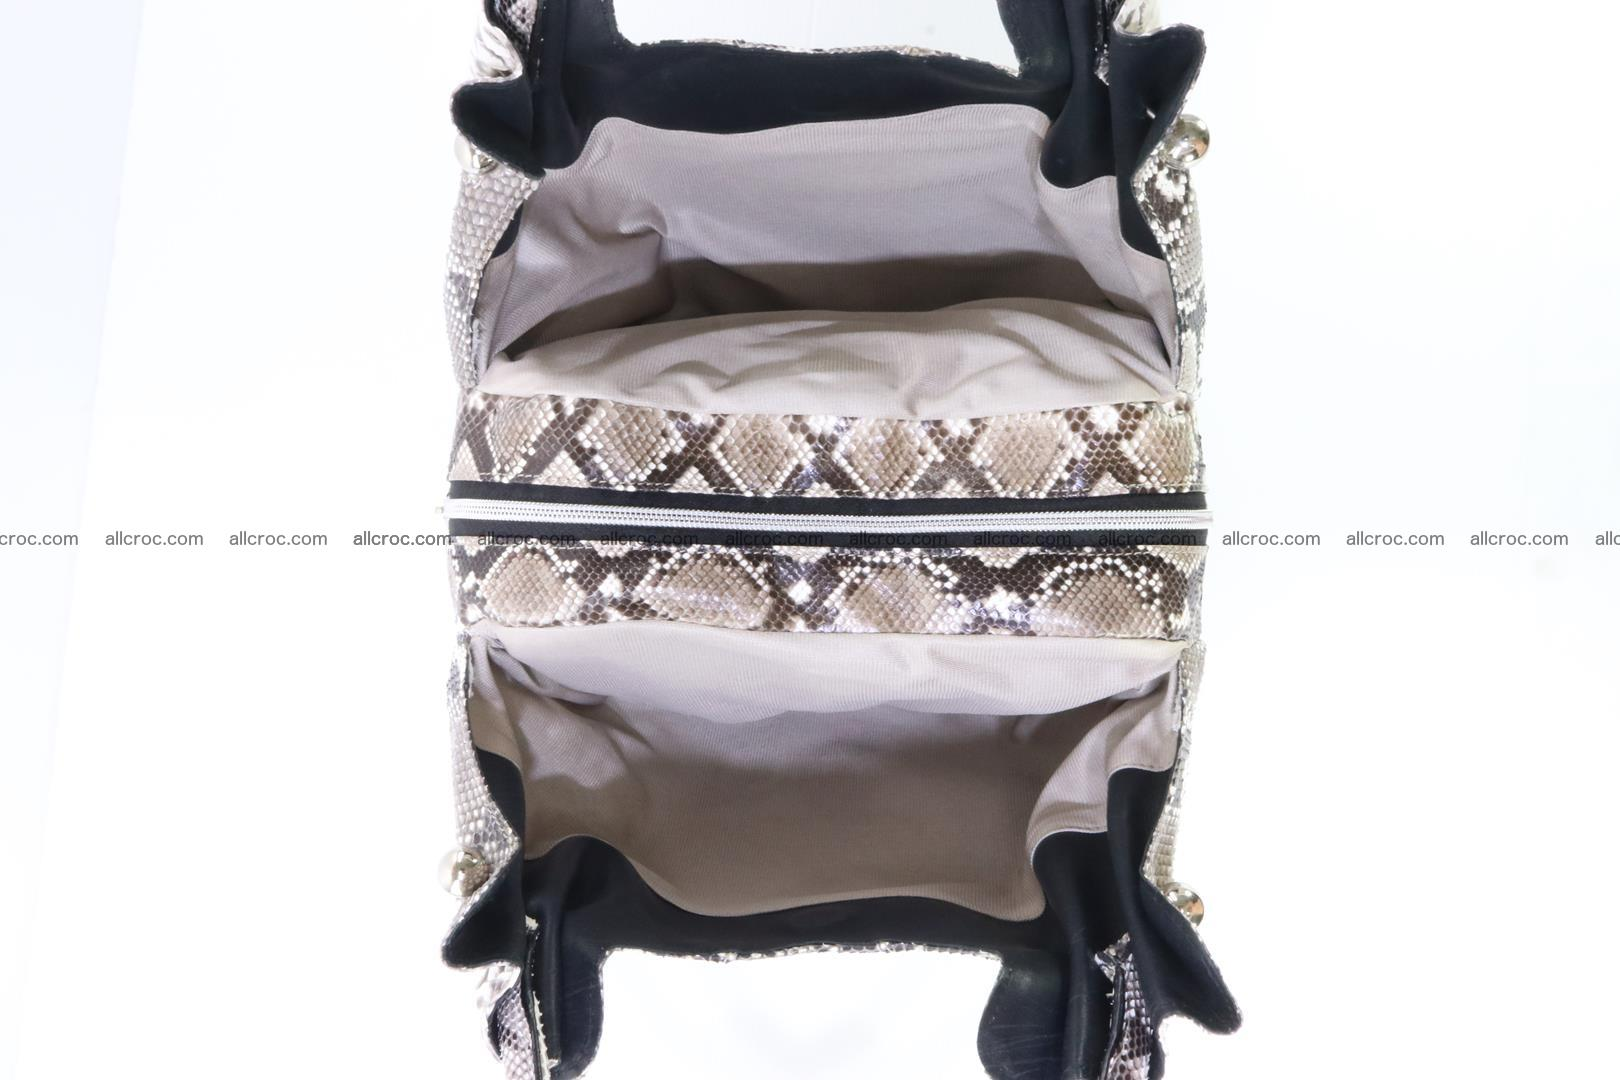 Handbag for lady from Python and stingray skin 167 Foto 11